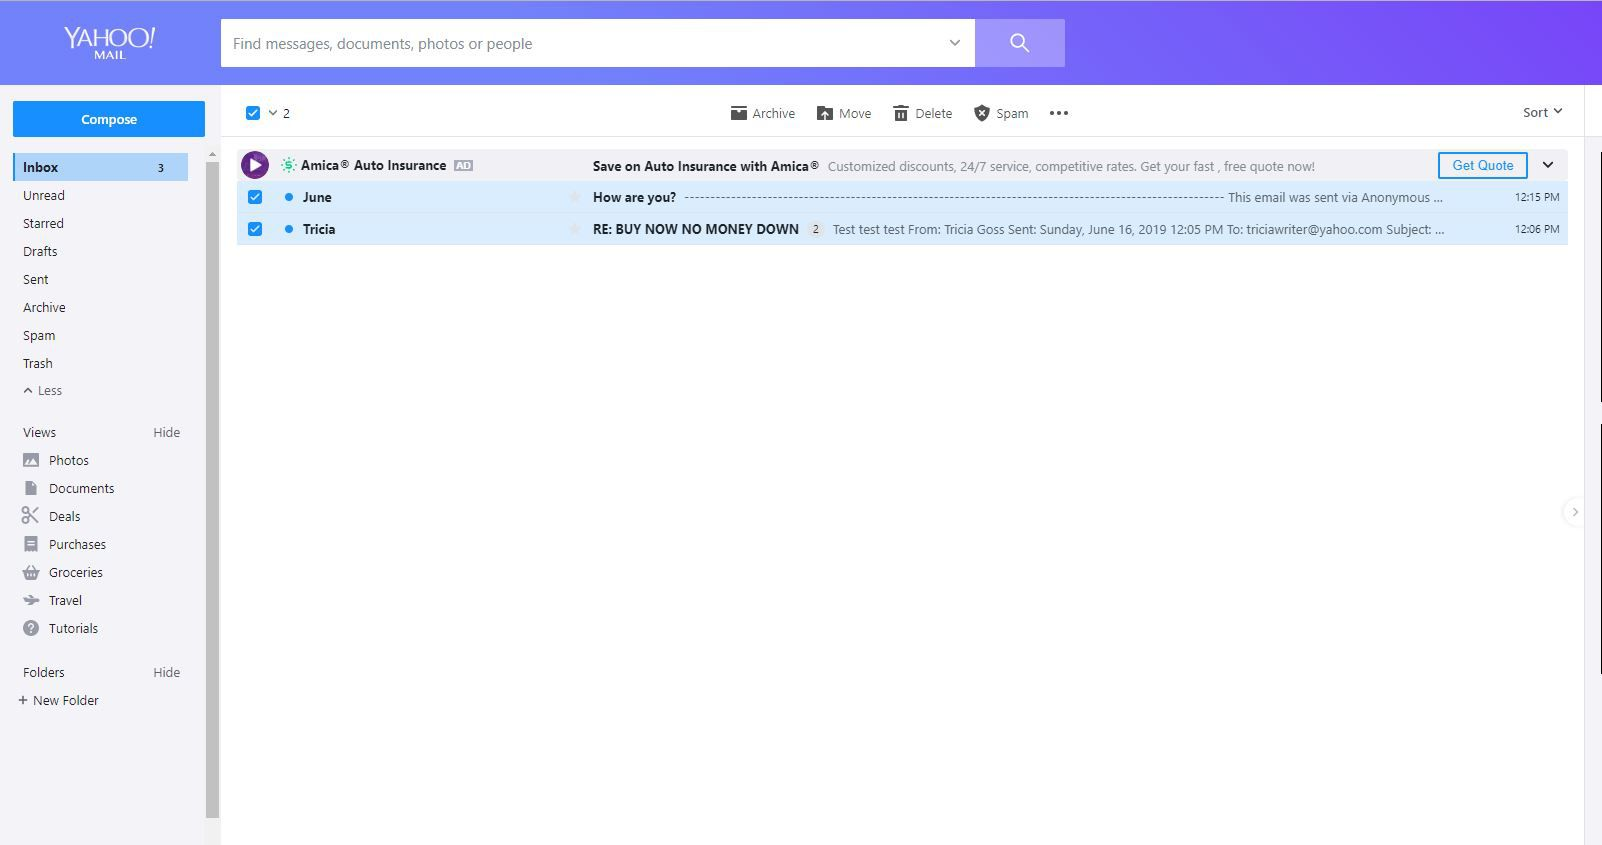 Send Spam to the Spam Folder in Yahoo Mail